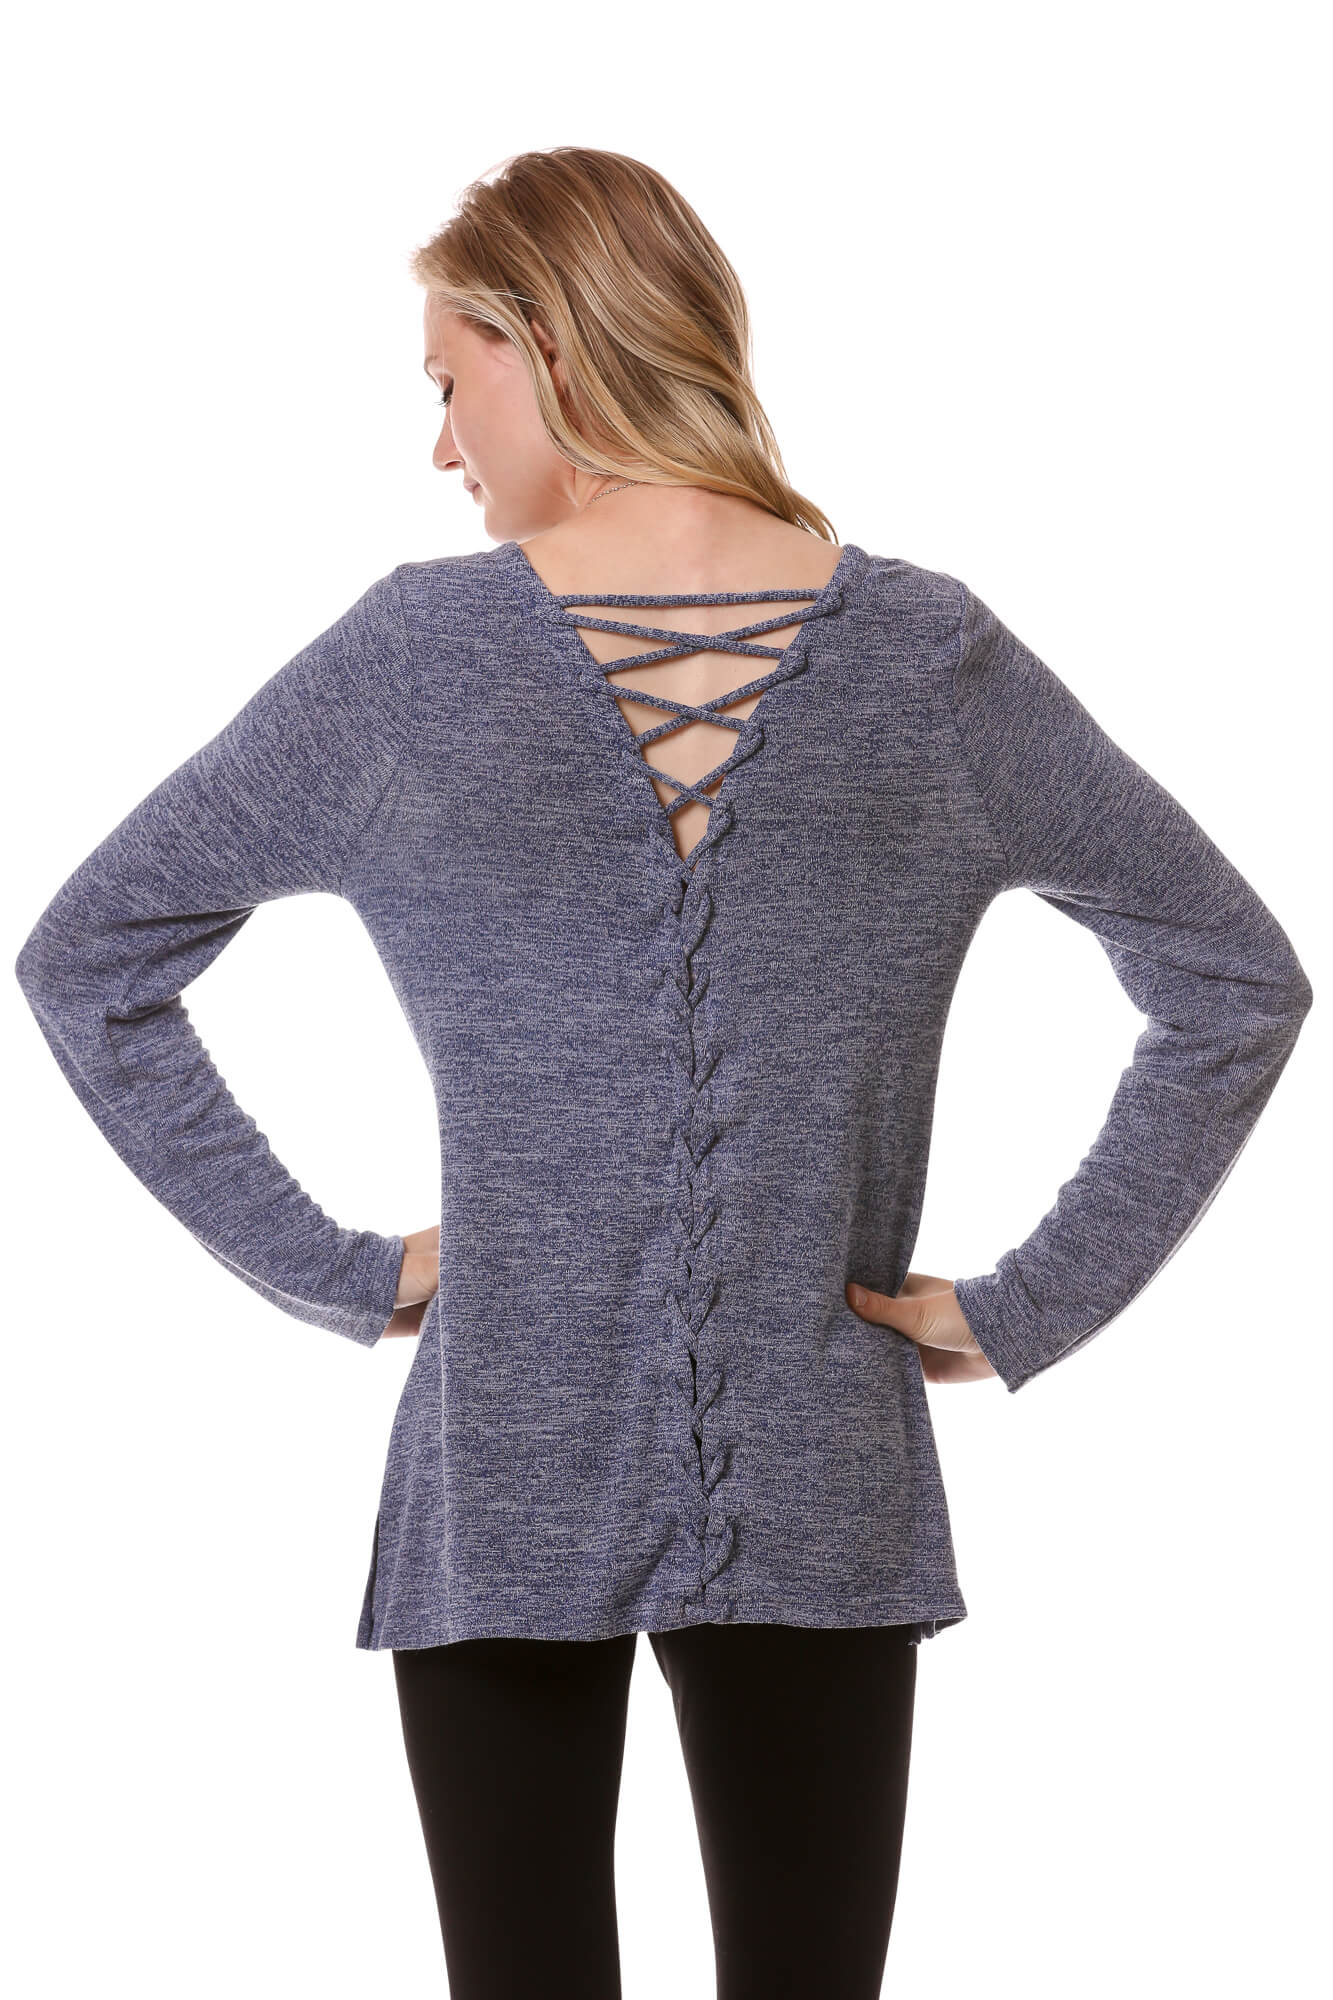 Women's Long Sleeve Lace Up Back Top | Basic Cozy Scoop Neck in Blue | Neesha